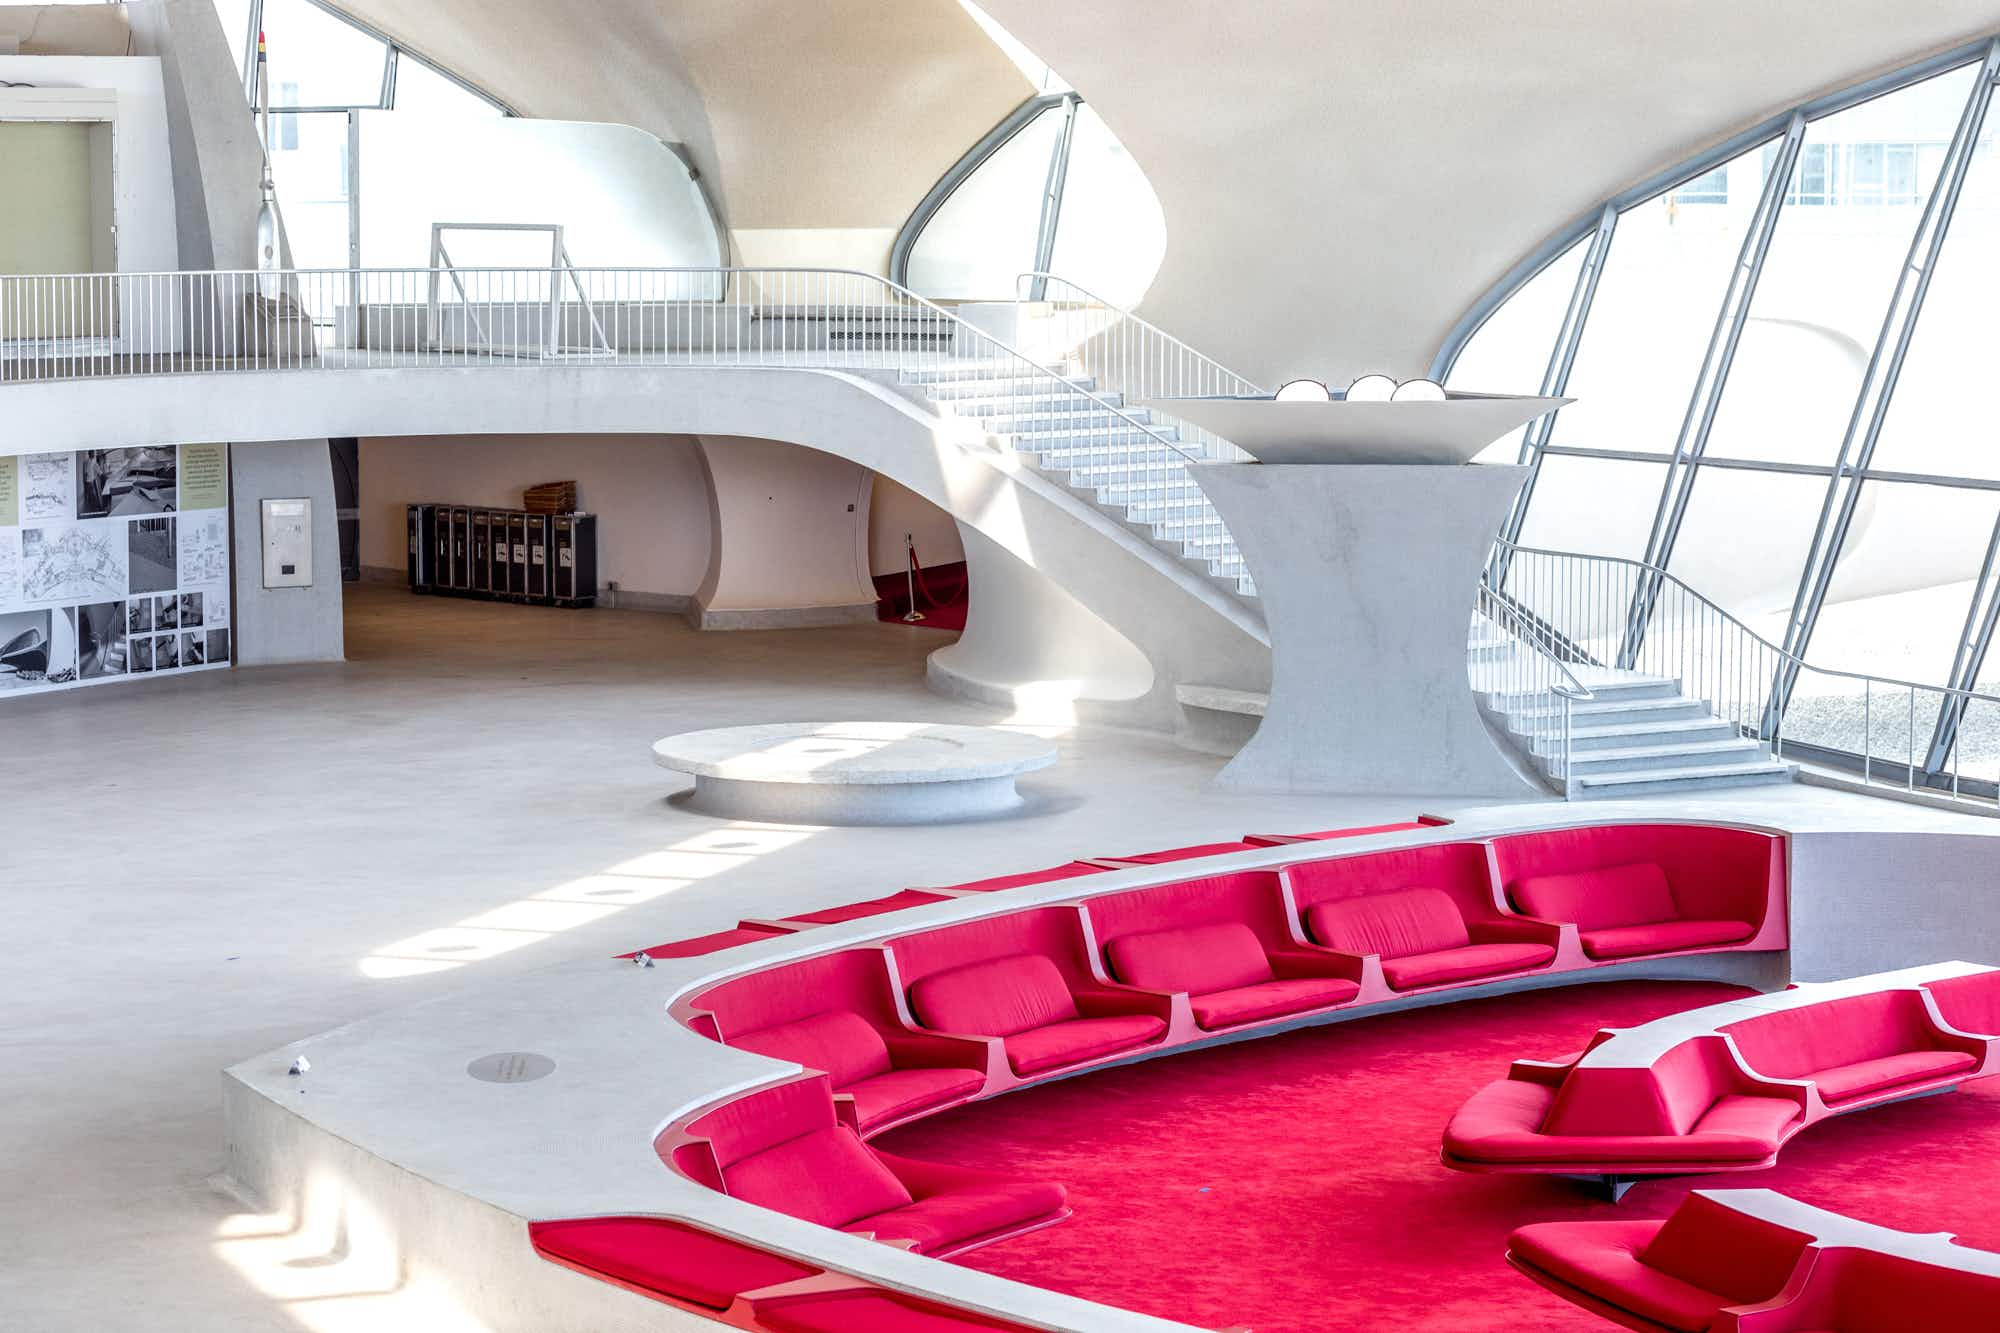 The retro TWA Hotel at JFK is taking reservations